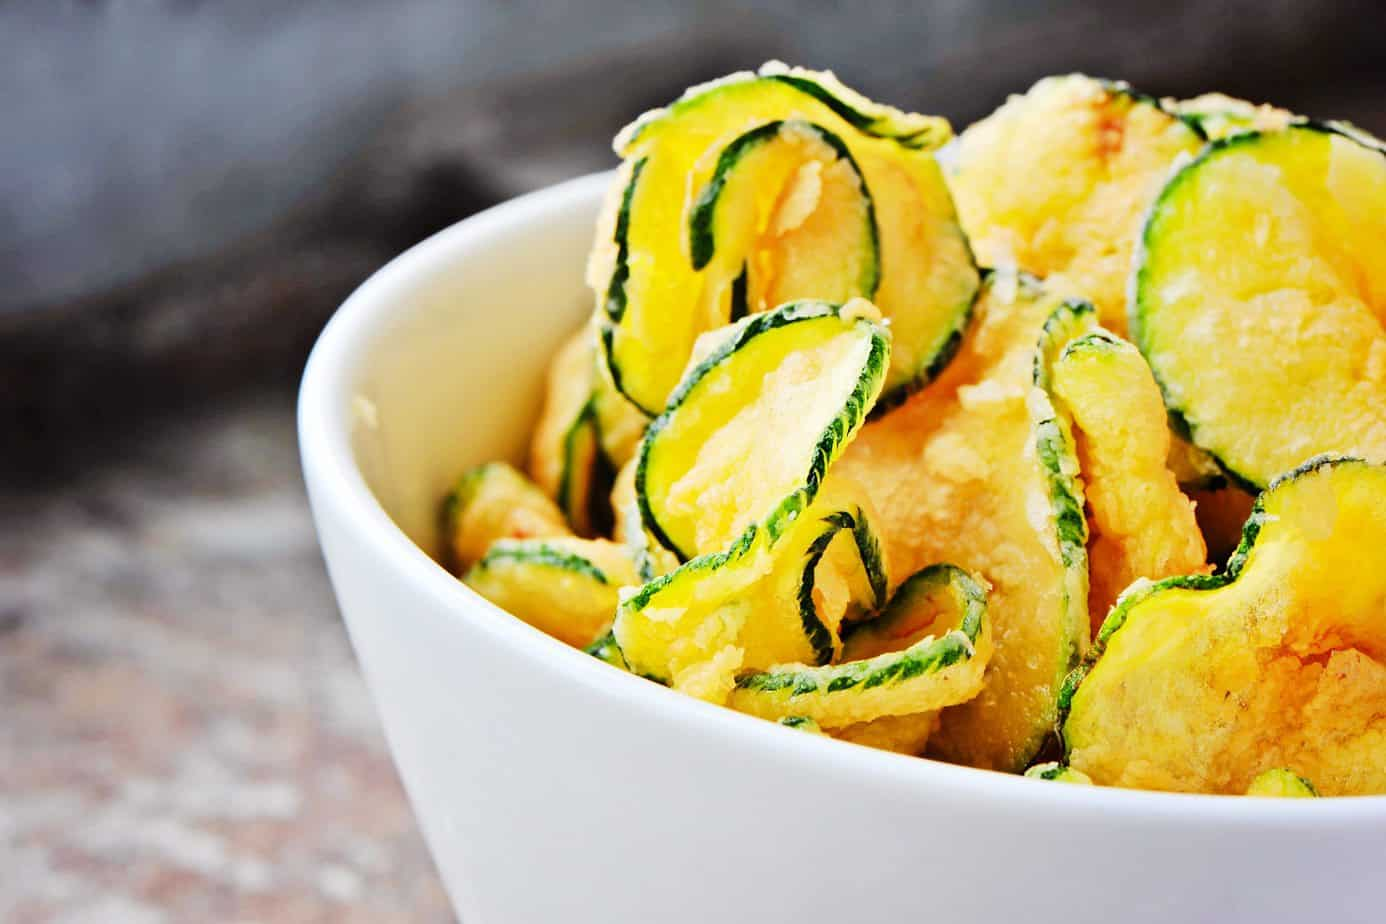 Salt and Vinegar Zucchini Chips | Healing the Body